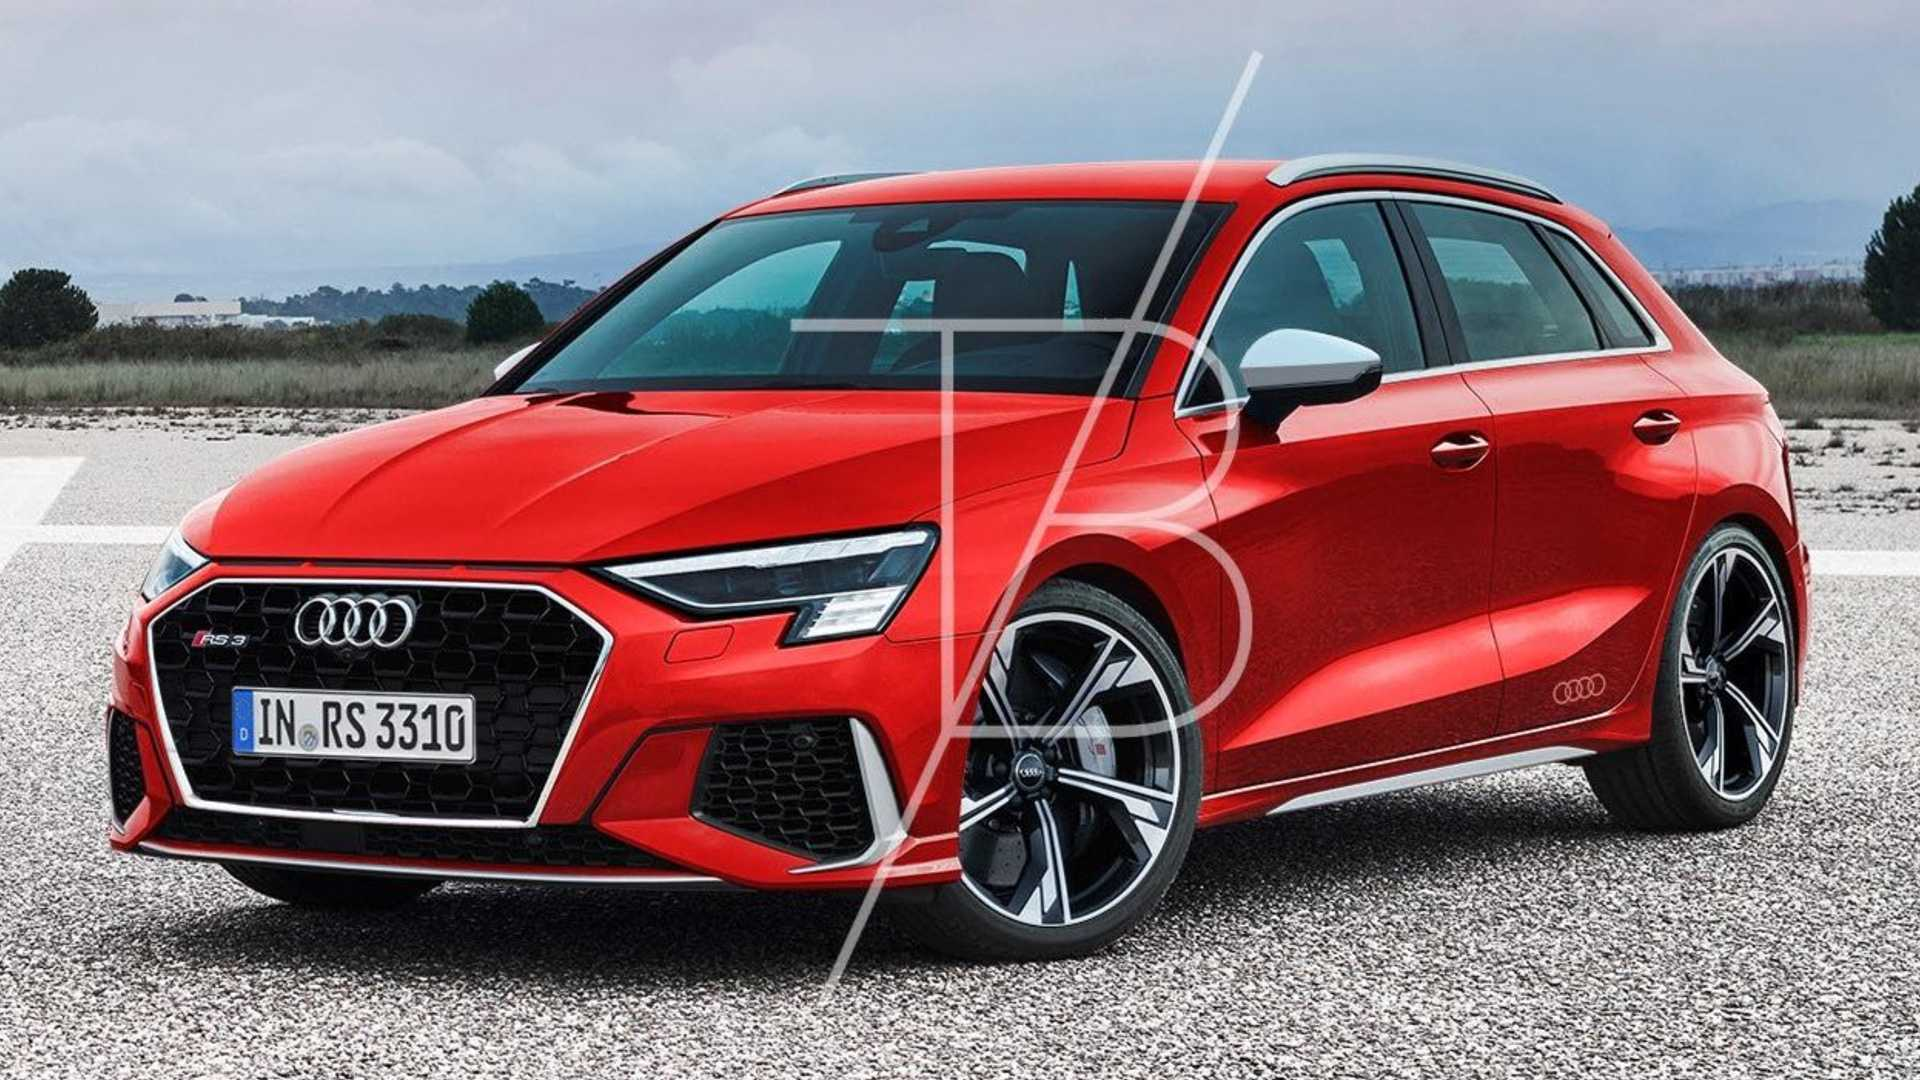 4 Audi RS4 Sportback Ready To Fight AMG A4 In New Rendering